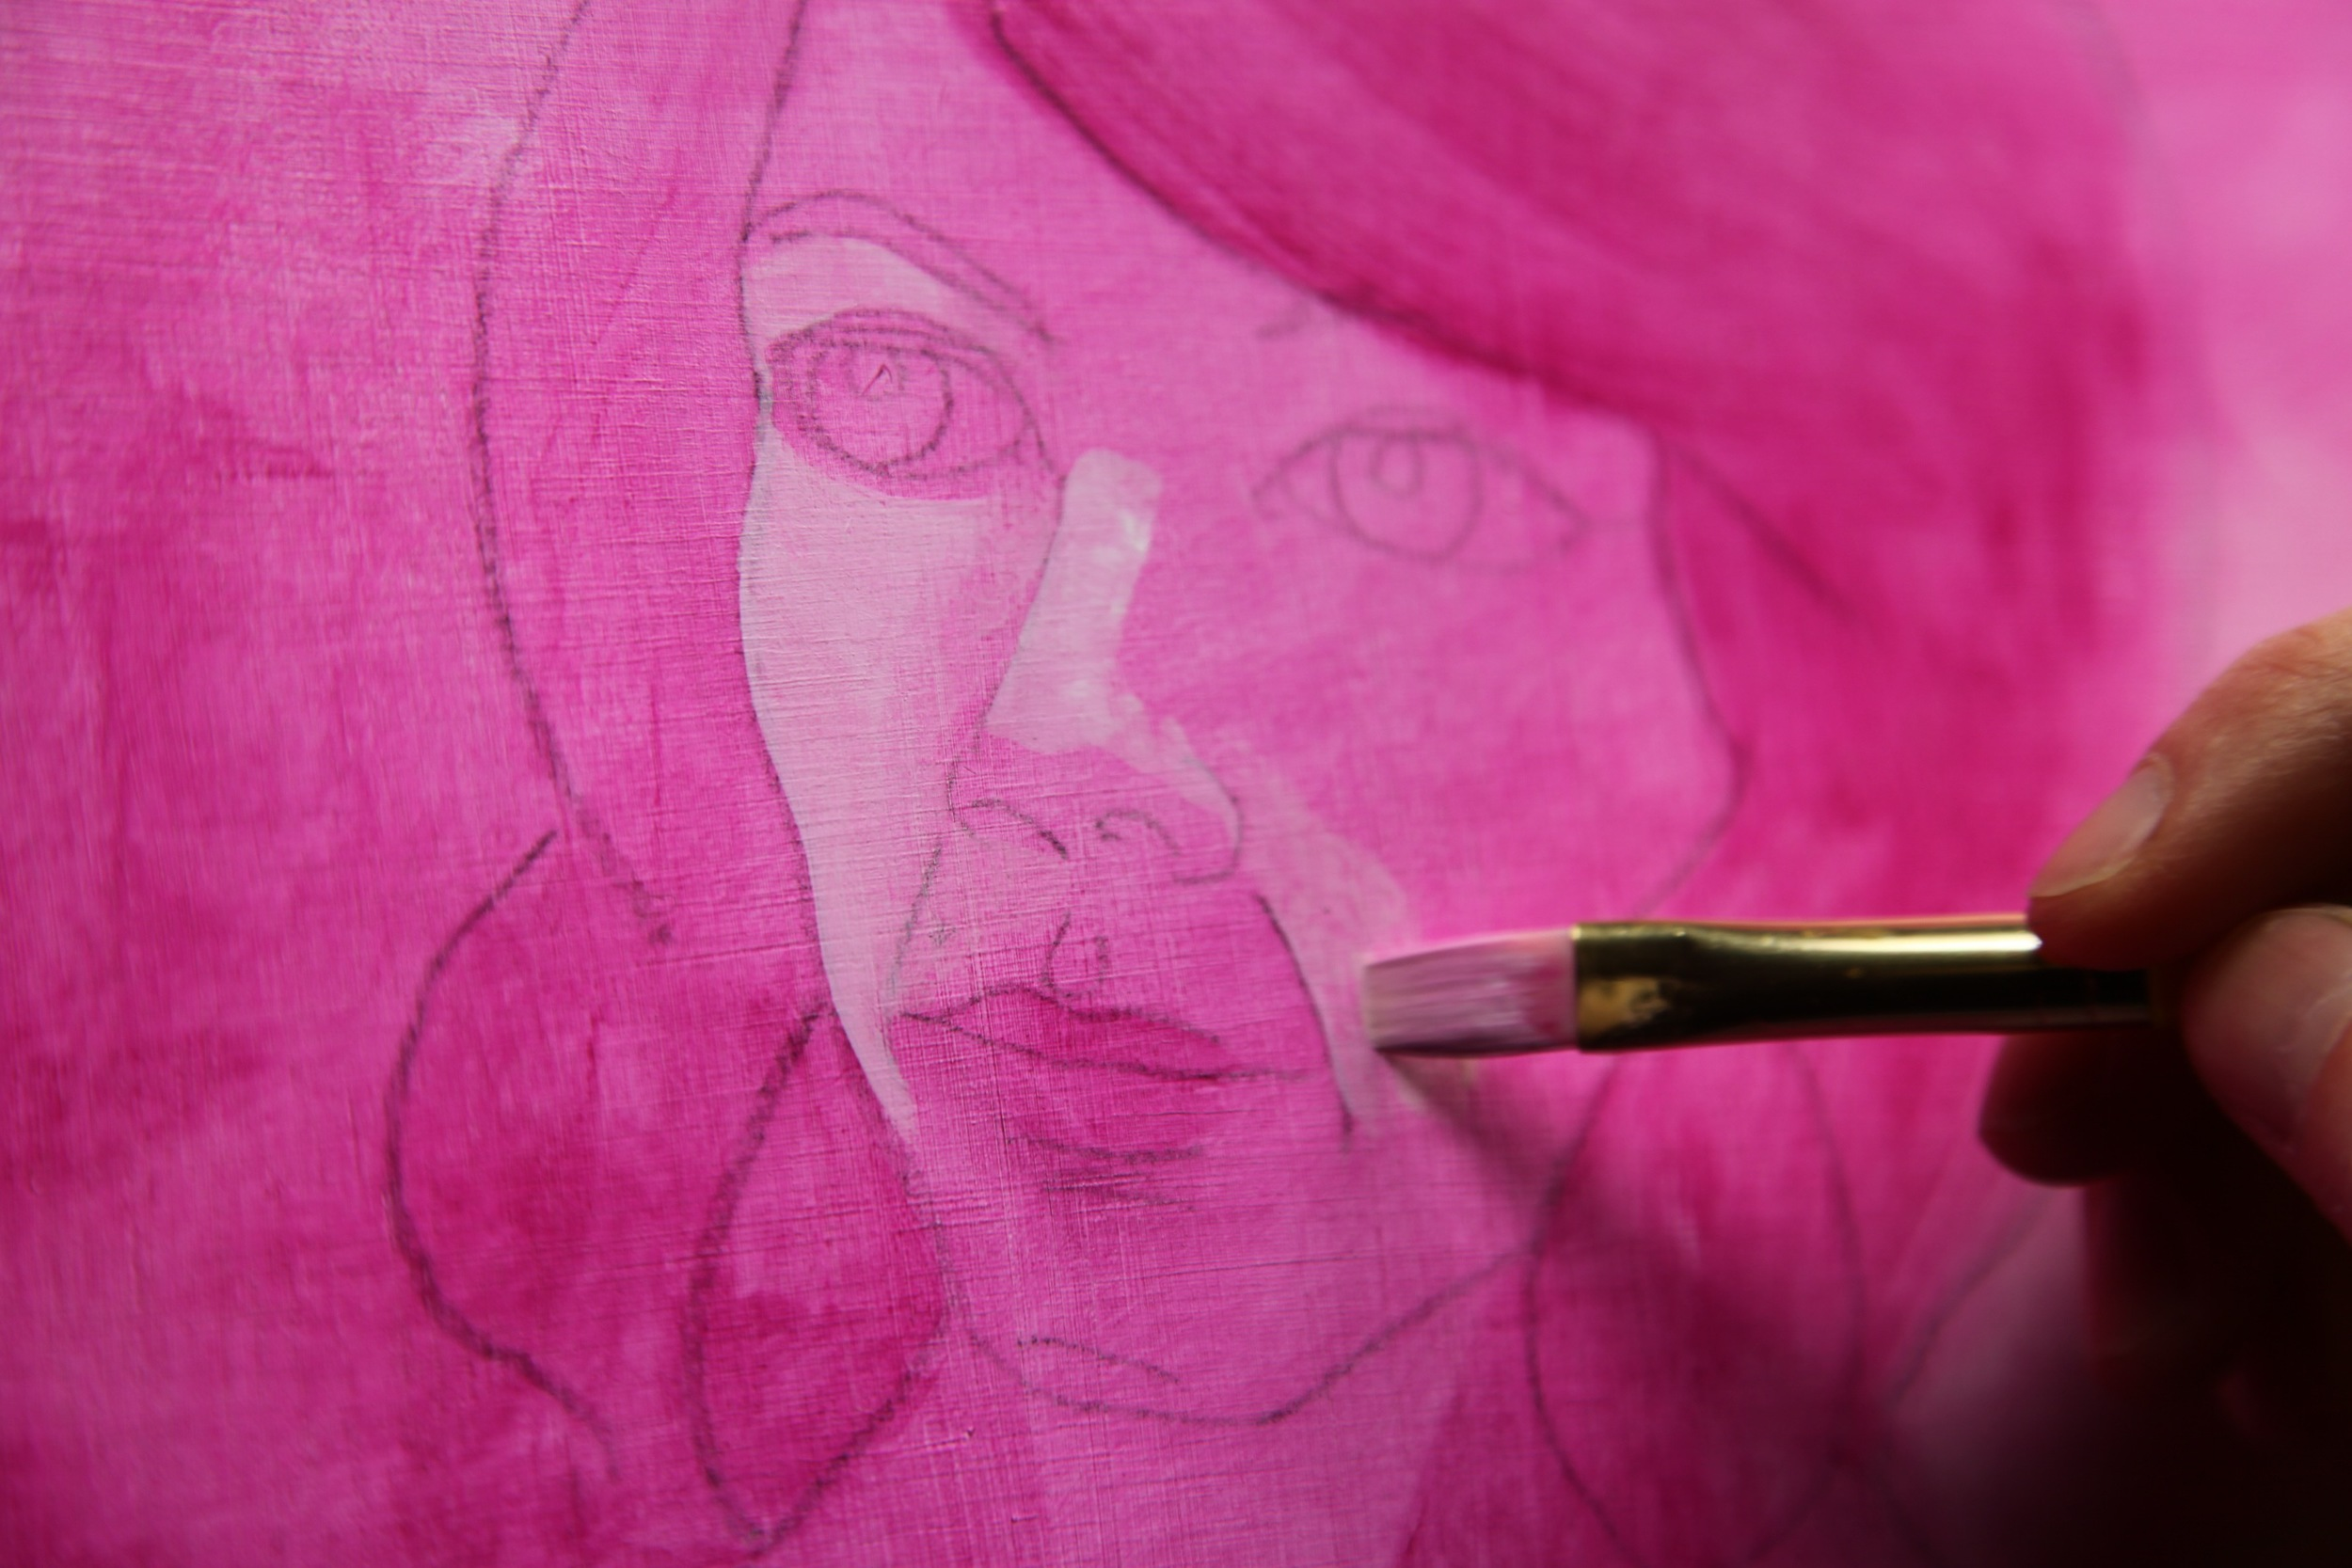 Beginning Hayden's face. She represents the future and she will be bold, inspired by the final phases of the Pokeweed.